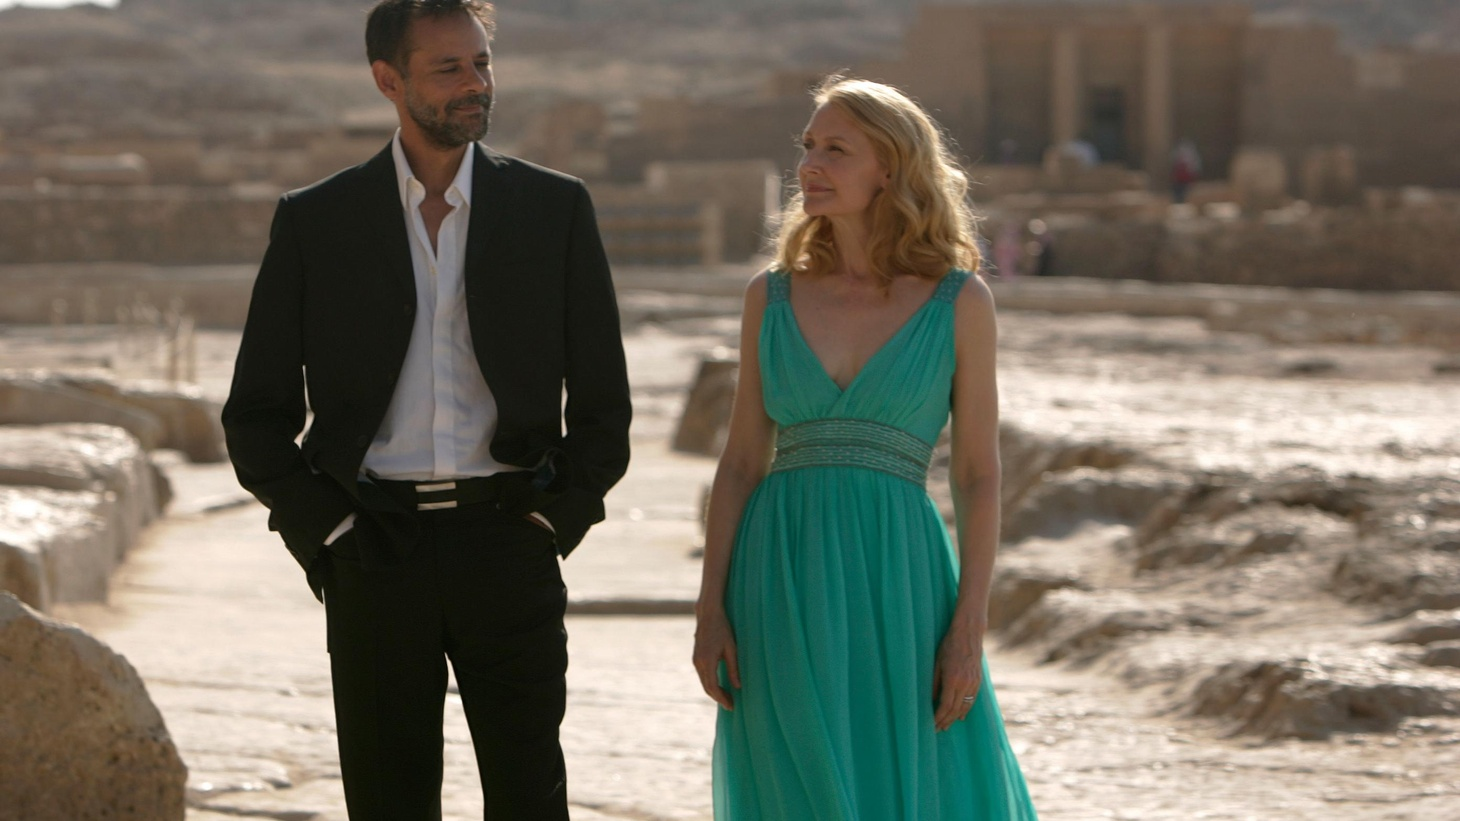 For quite a lot of time, the new film Cairo Time seems to be just a pretext for the camera to follow Patricia Clarkson around the Egyptian cpital and its spectacular surroundings... 